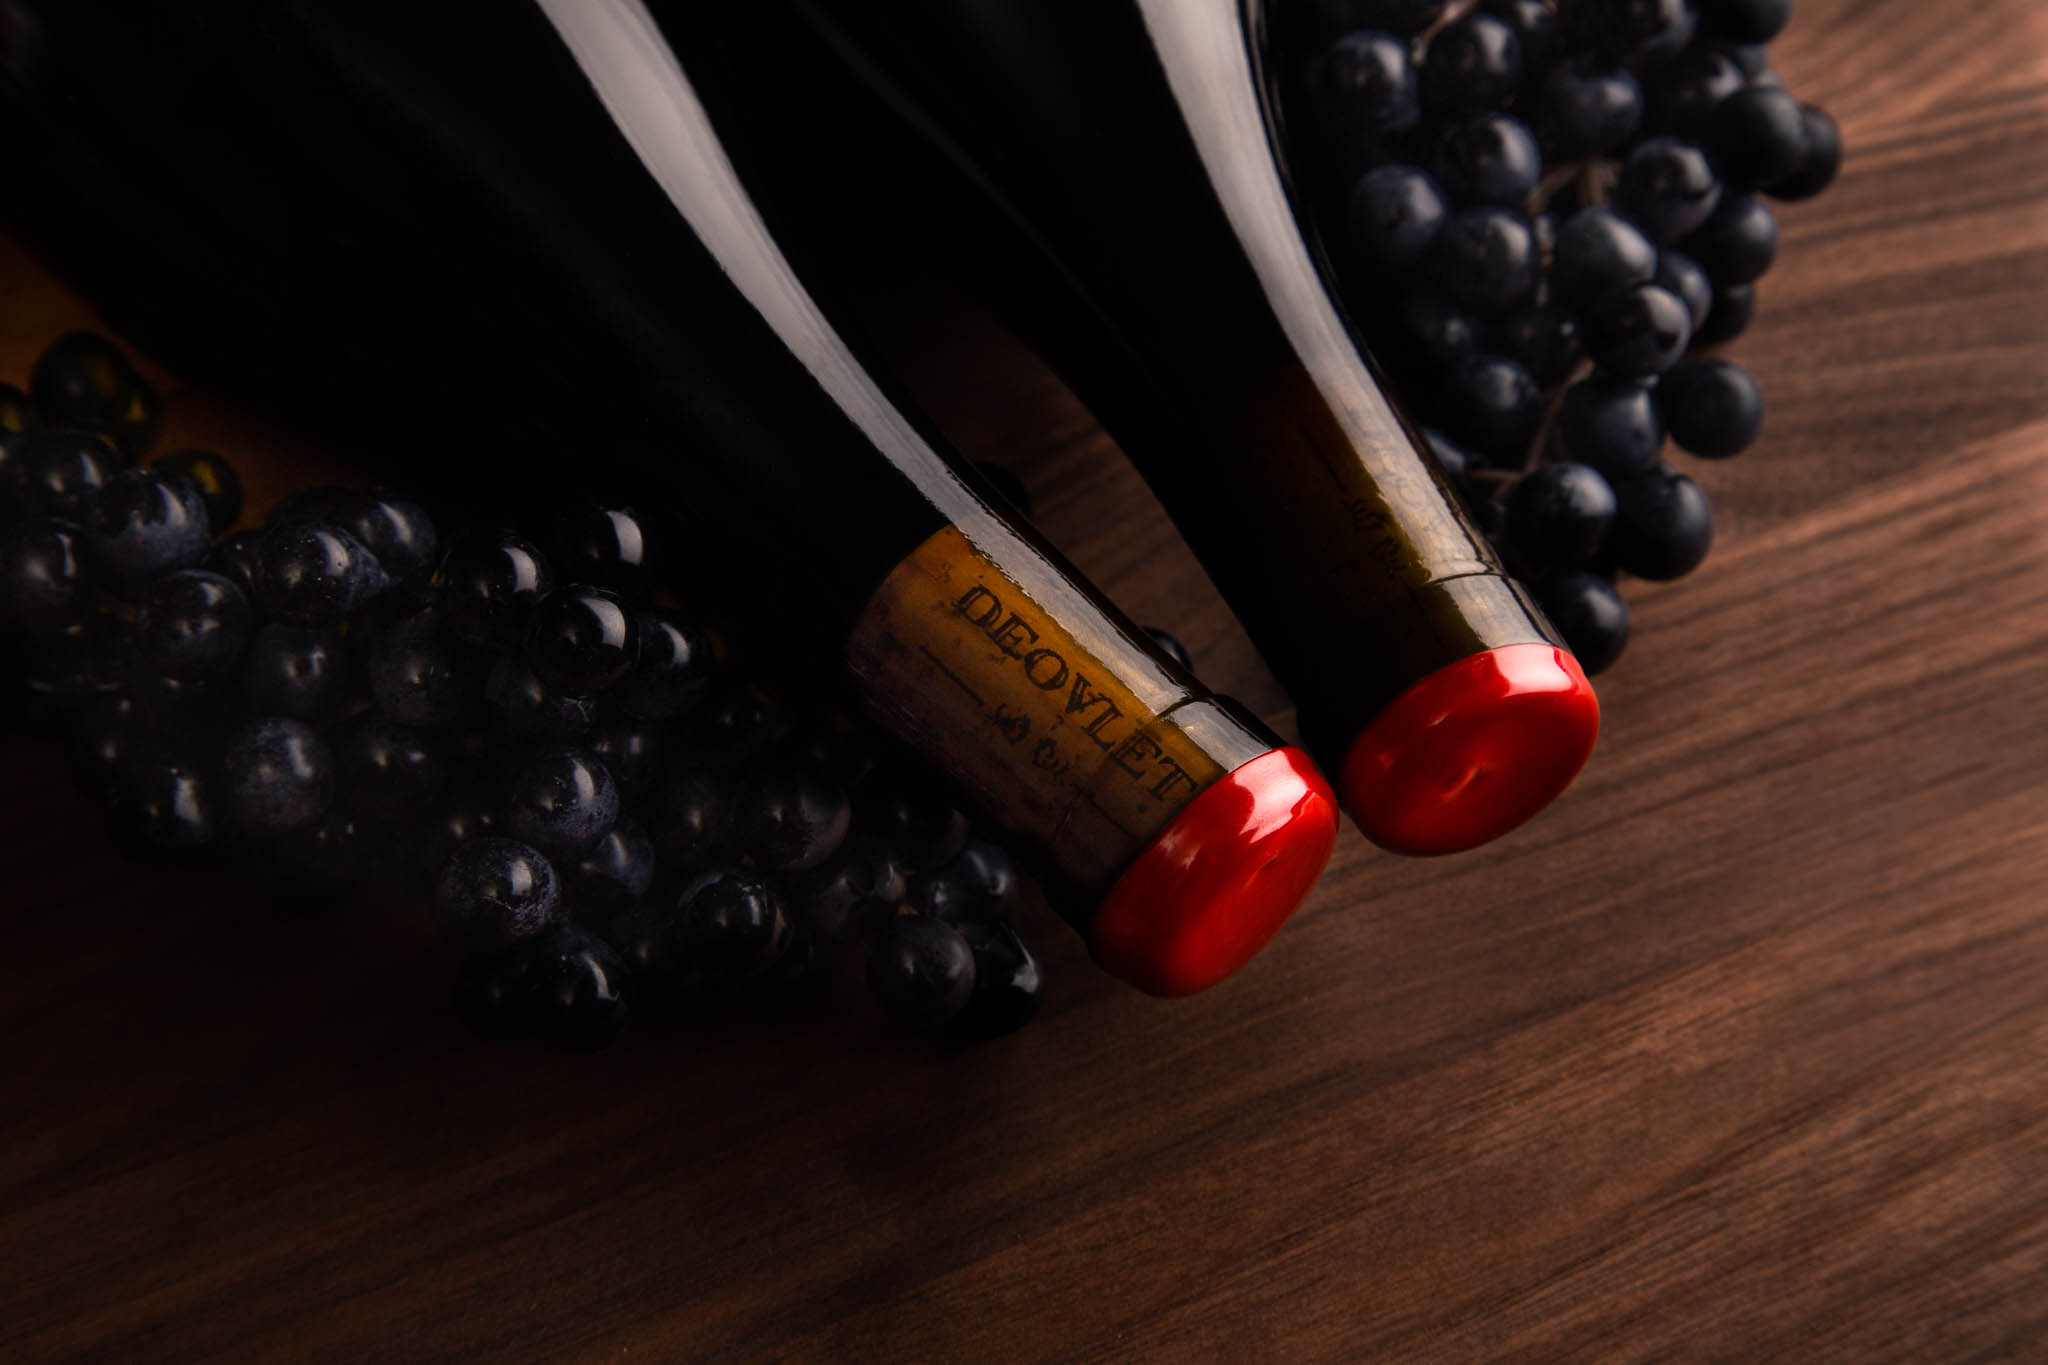 Close Up Detail Shot of San Luis Obispo Based Deovlet Wines' Corks with Red Wax Seal Among Grapes